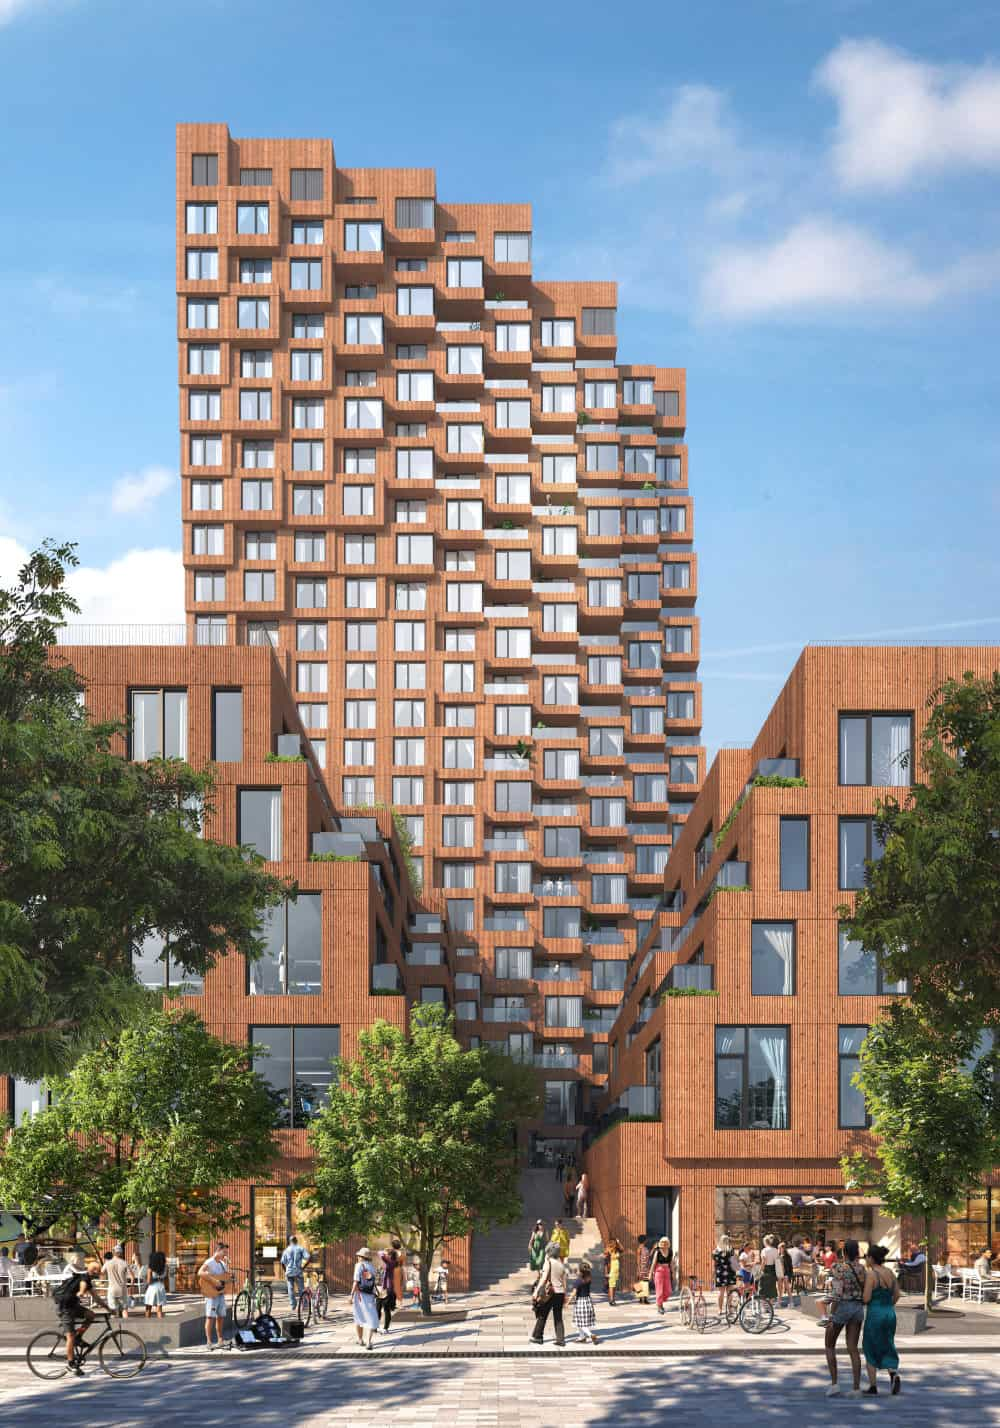 Undulating balconies extend all the way up the western façades of the 23-storey tower